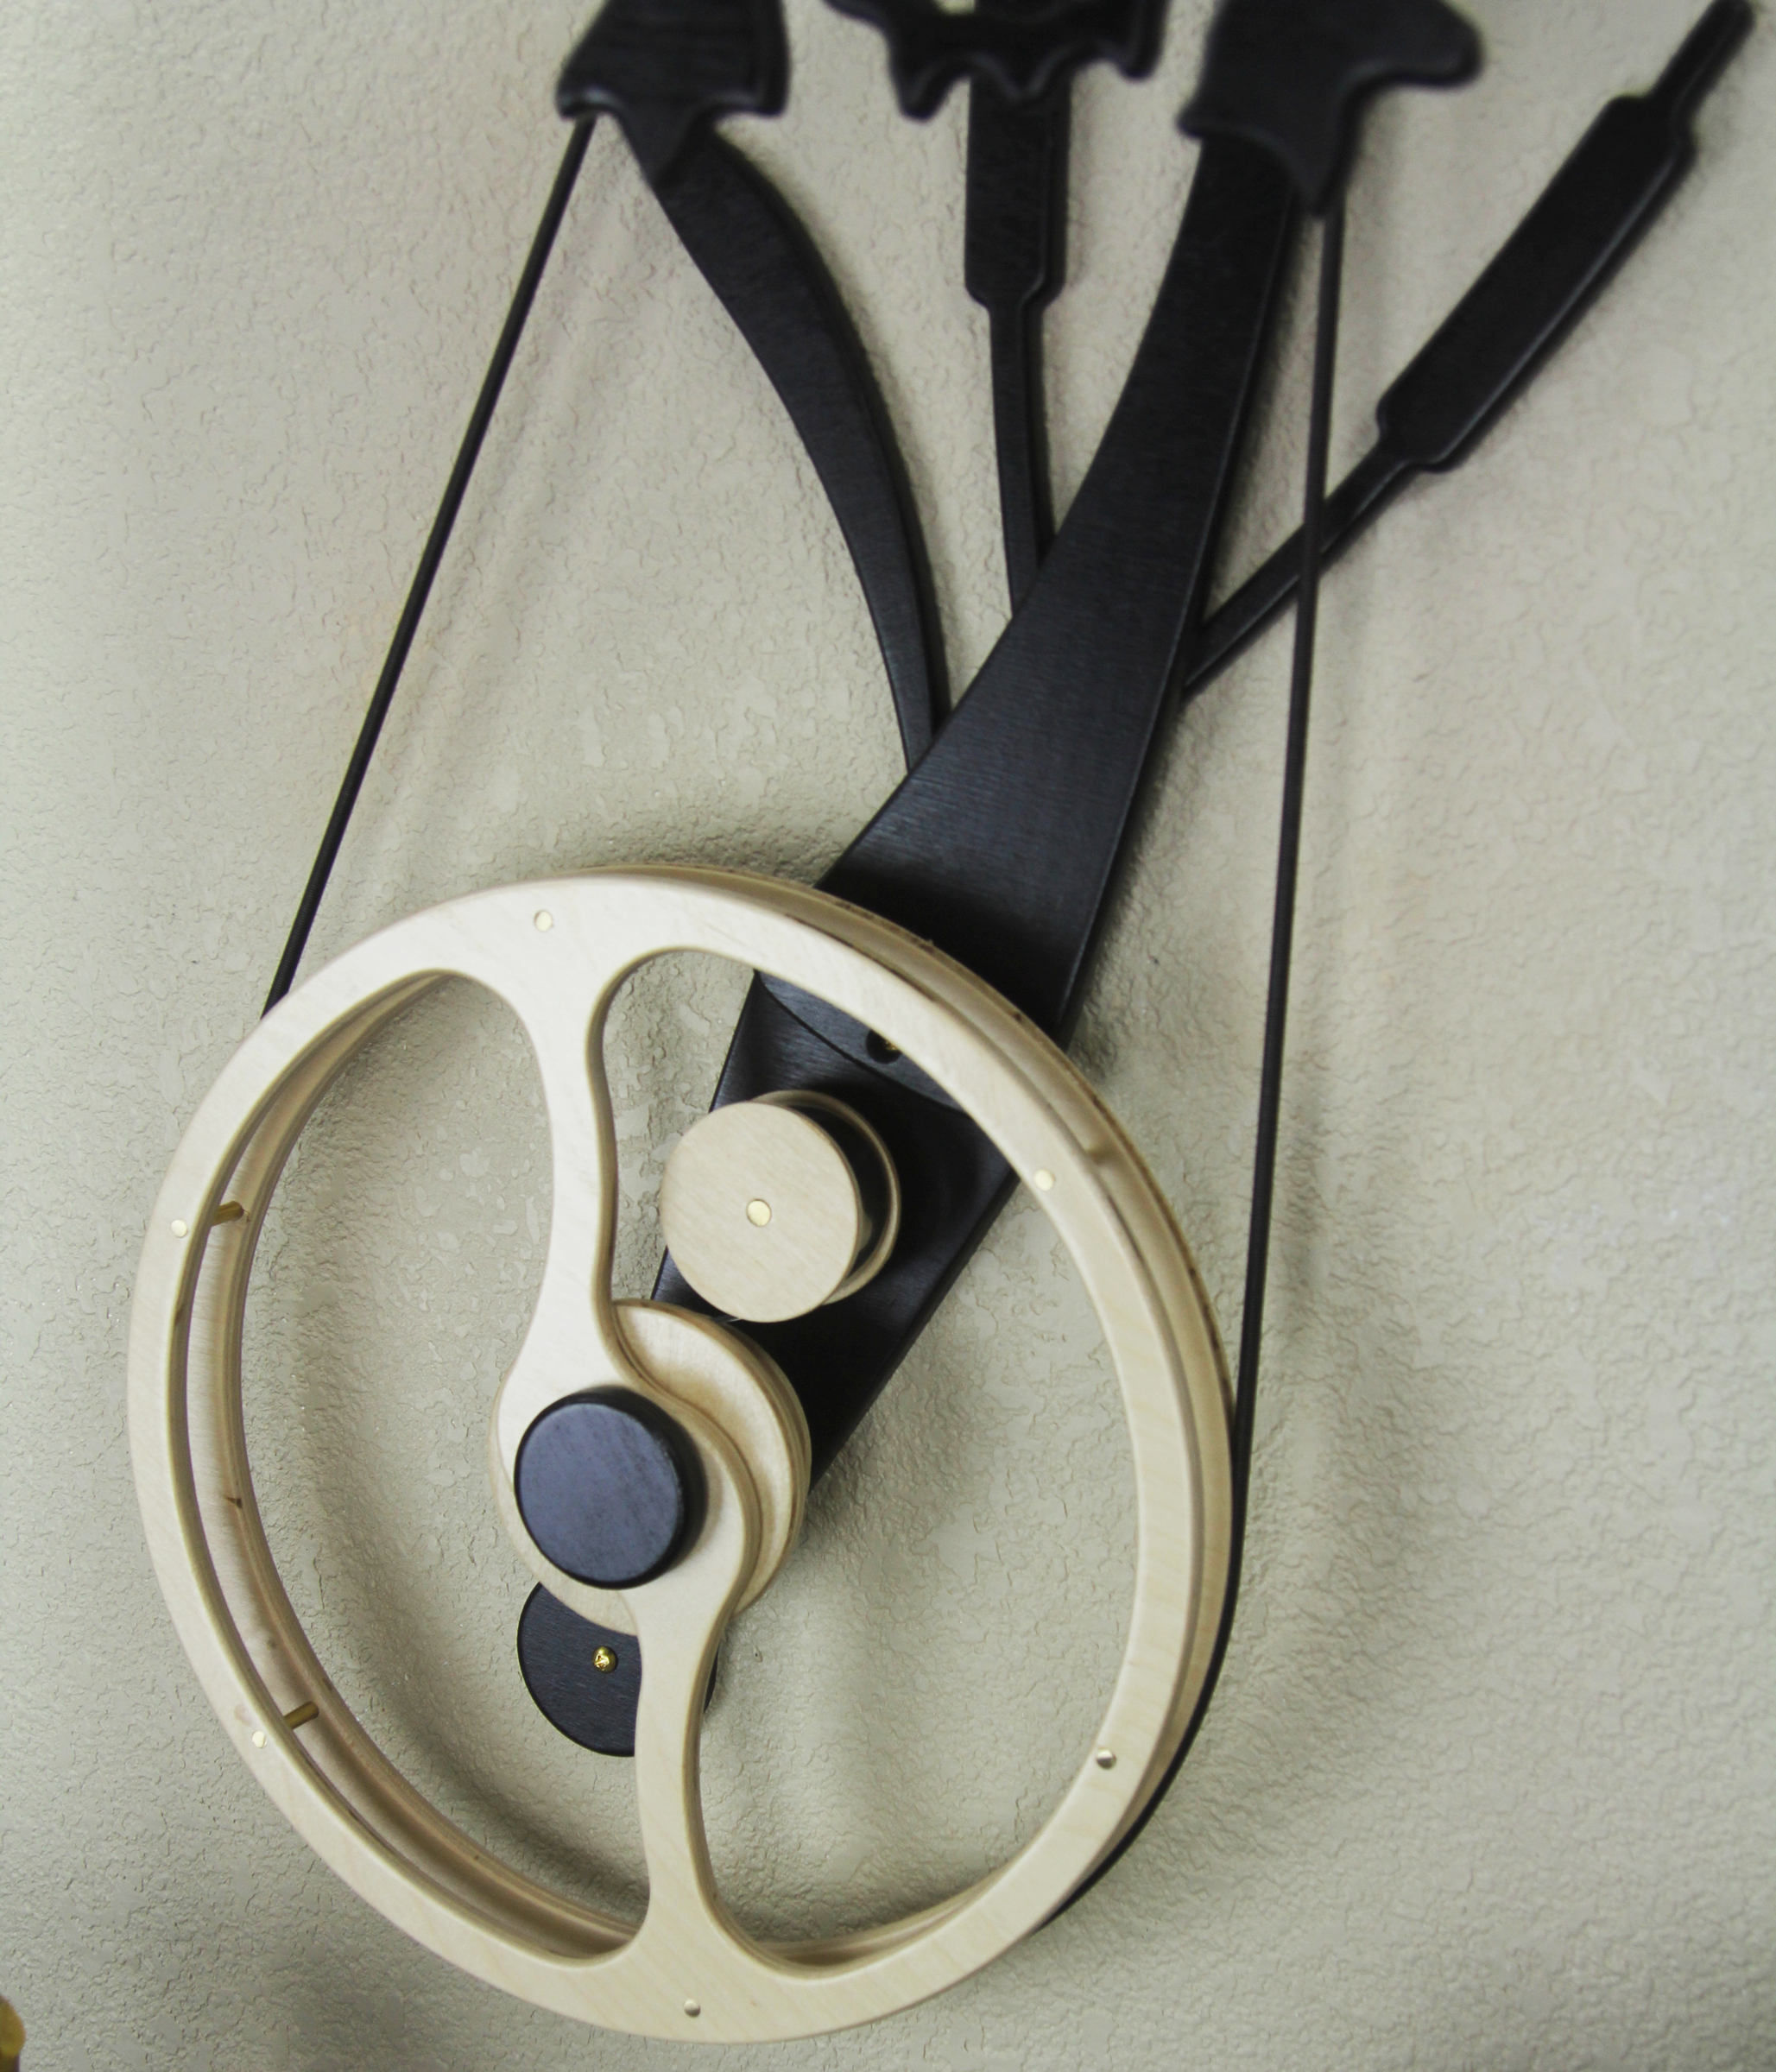 Pulley_4162-2400x2057.png